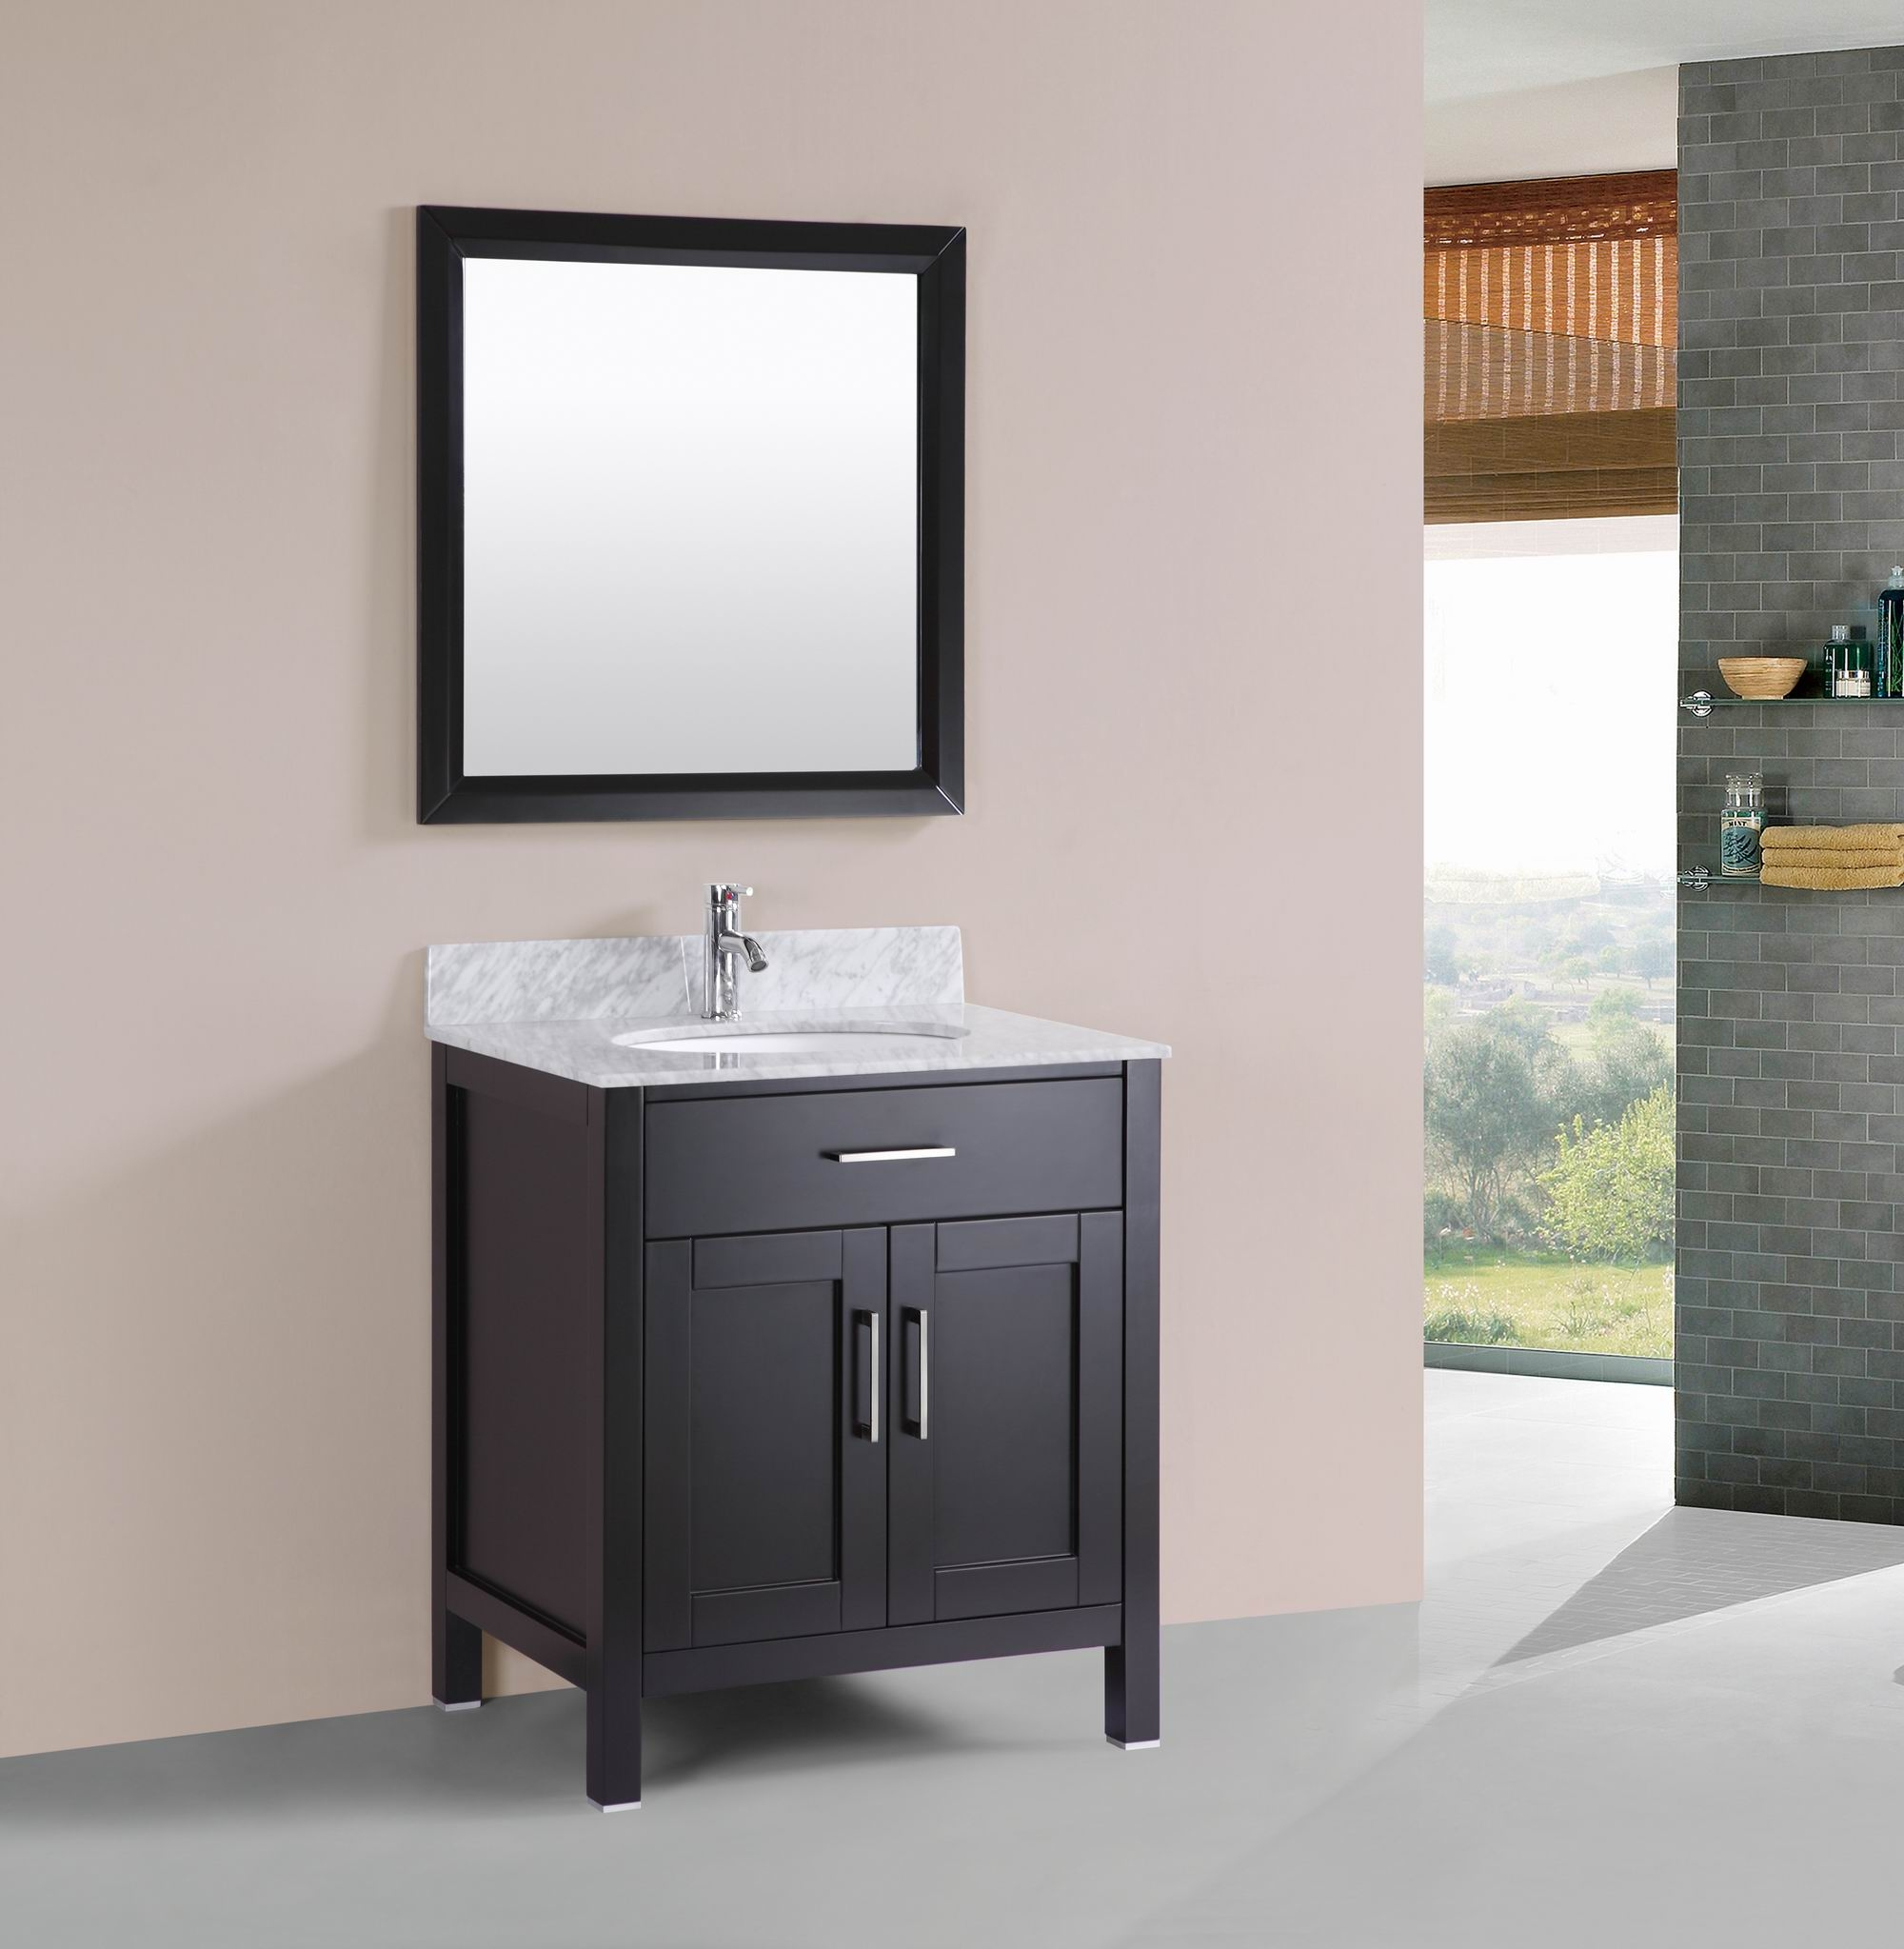 Free Standing Bathroom Cabinet With Marble Top